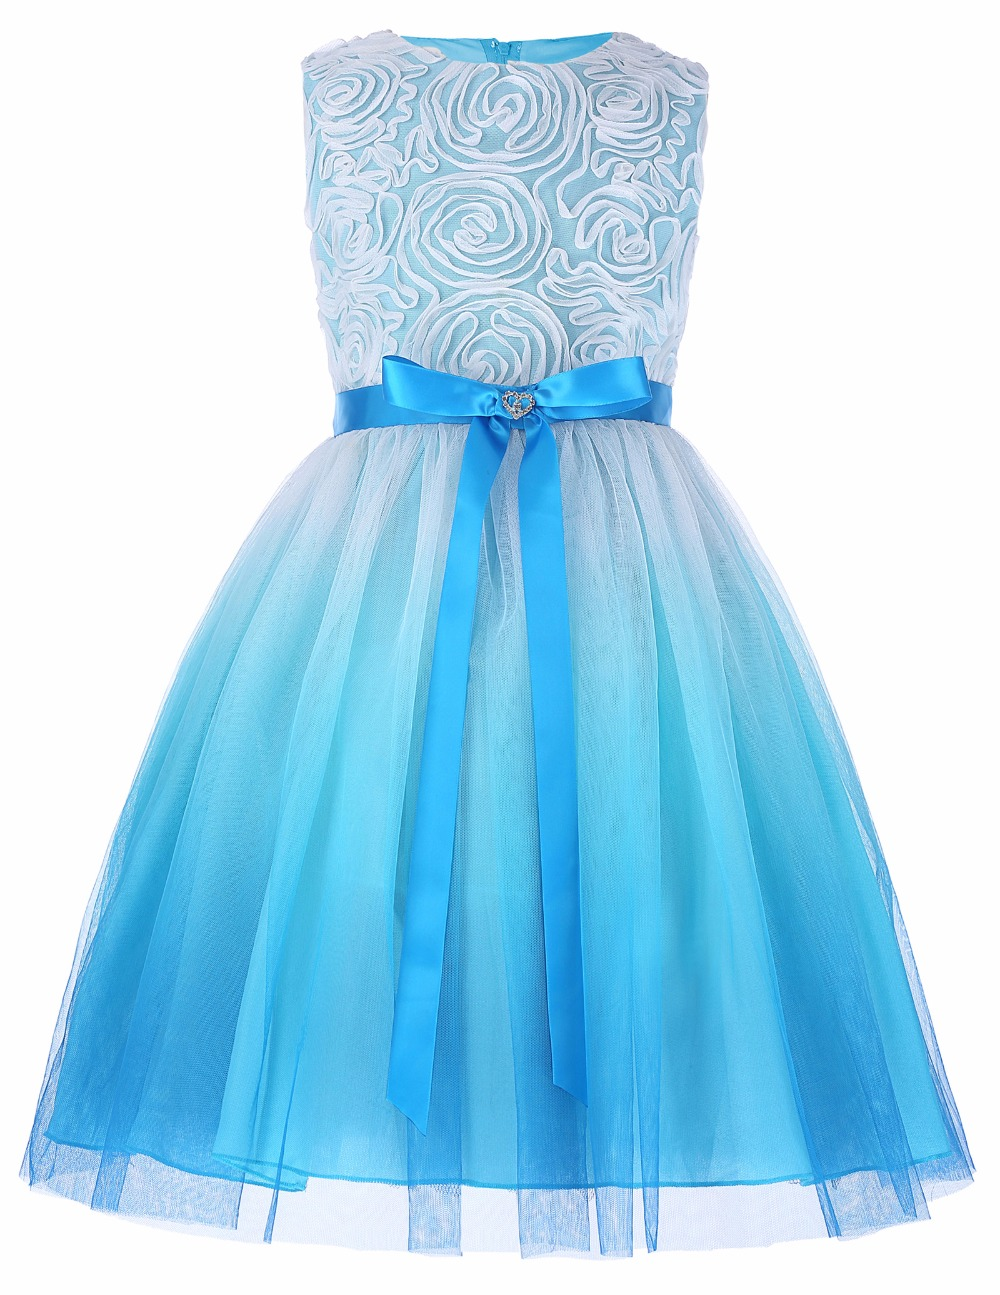 Grace Karin 2017 Flower Girl Dresses Luxury Tulle Flower Party Dresses For Wedding Party First Communion Dresses With Bow Ribbon 11